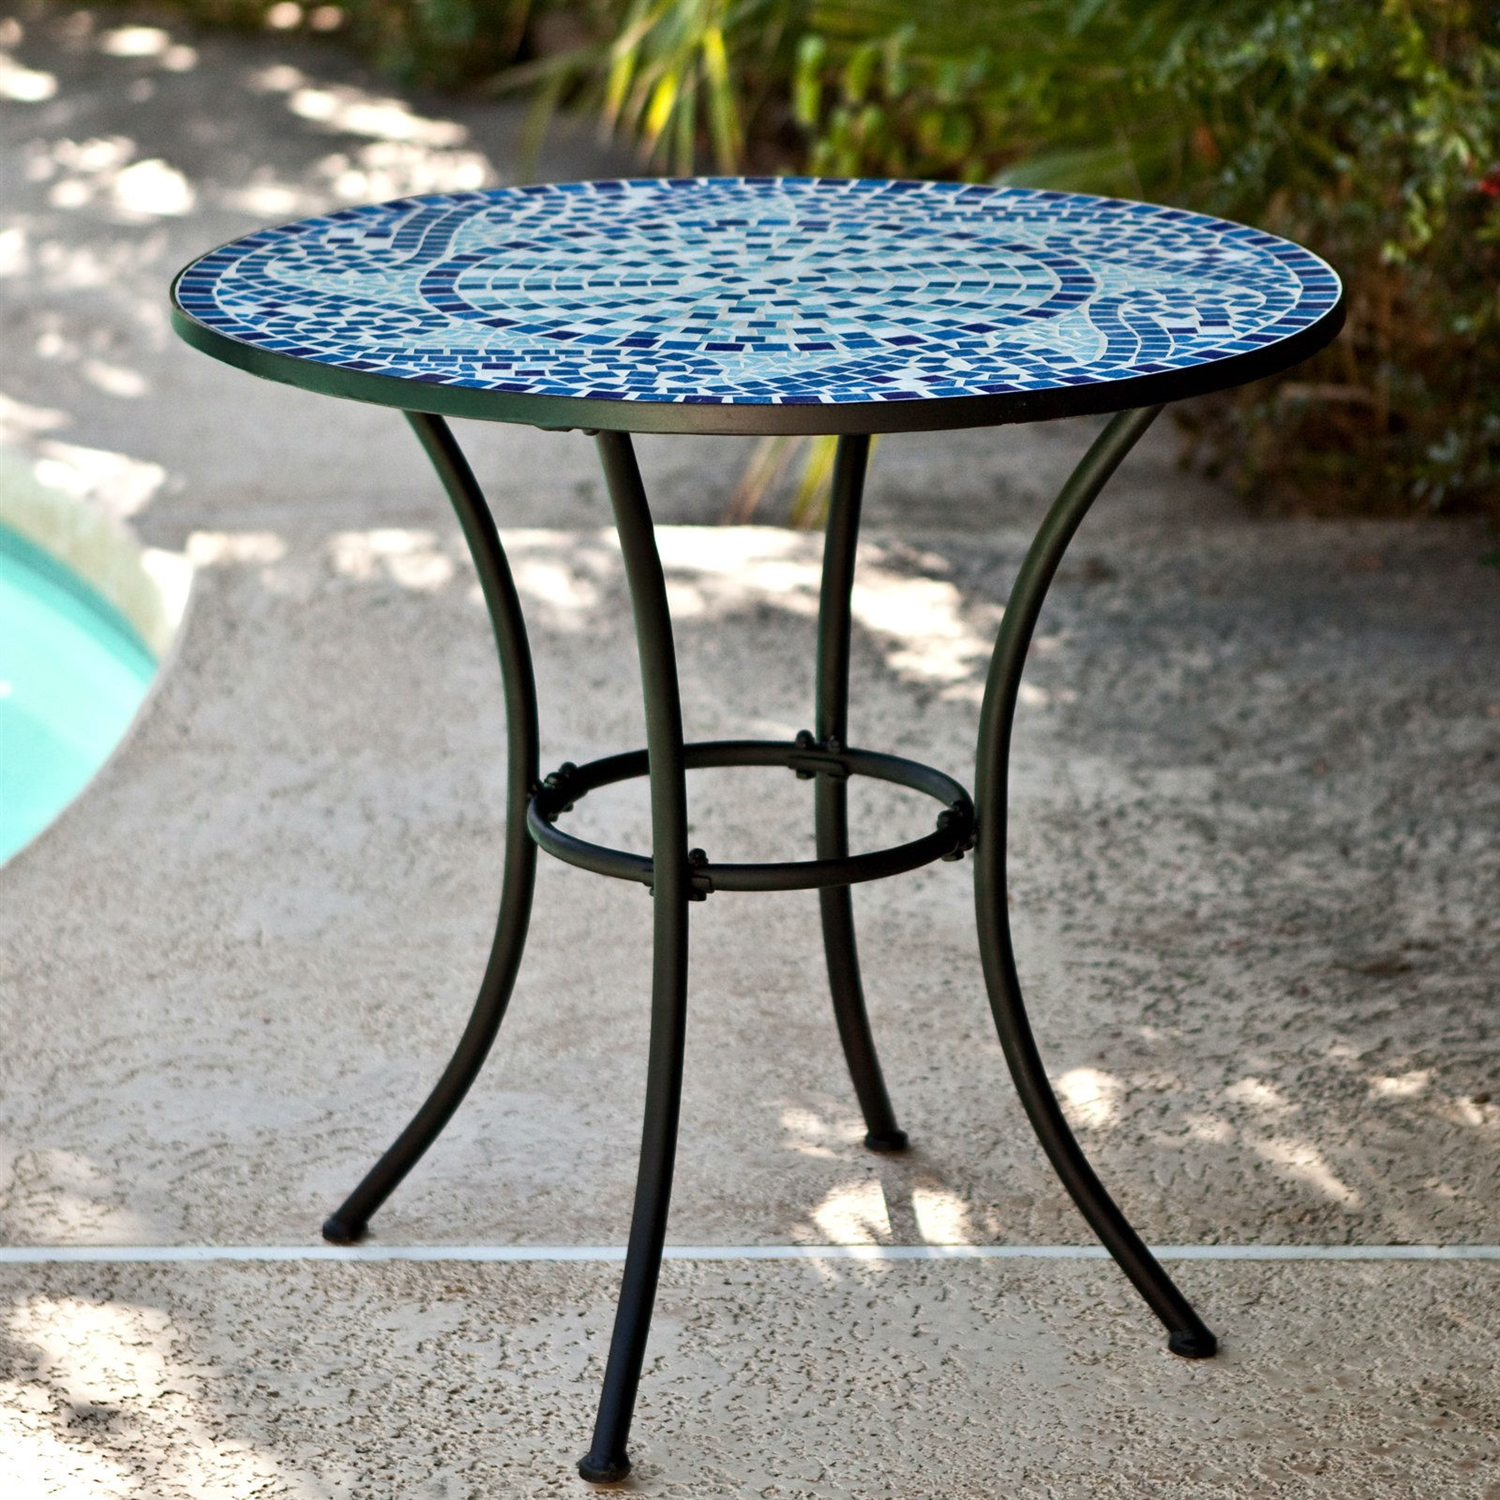 30-inch Round Metal Outdoor Bistro Patio Table with Hand-Laid Blue ...